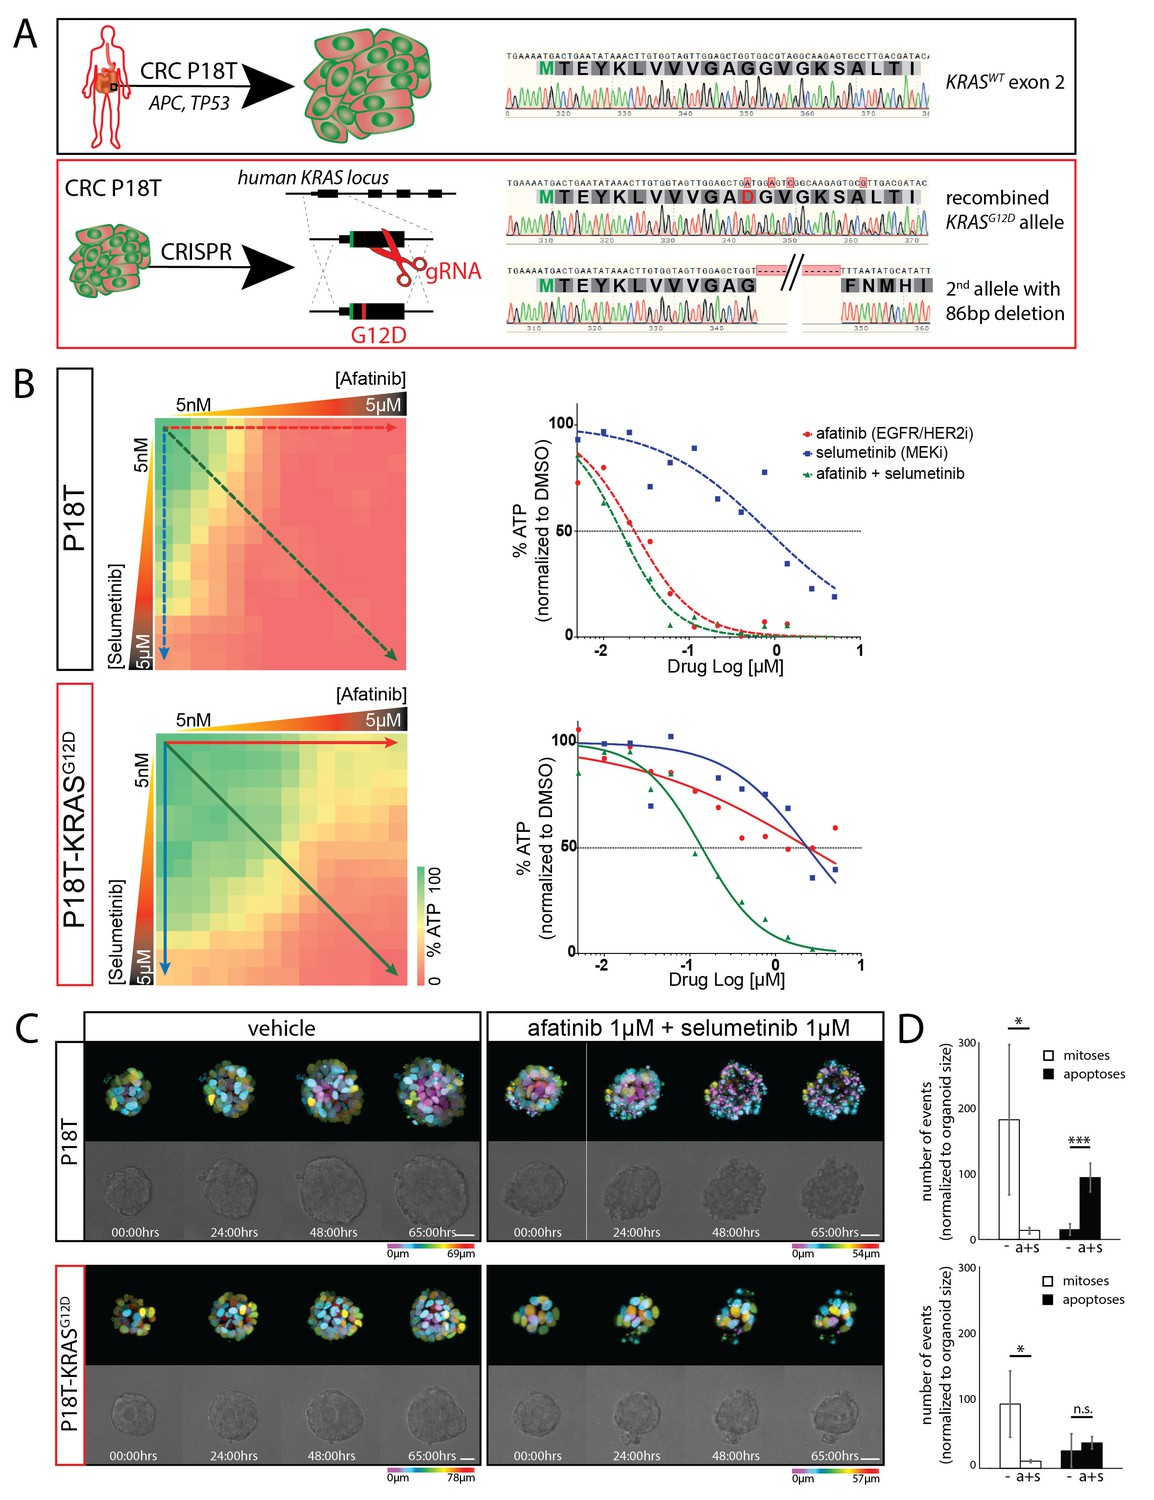 Medication discount coupons bvgg - Crispr Genome Editing In Crc Organoids Reveals Effect Of Krasg12d On Drug Response